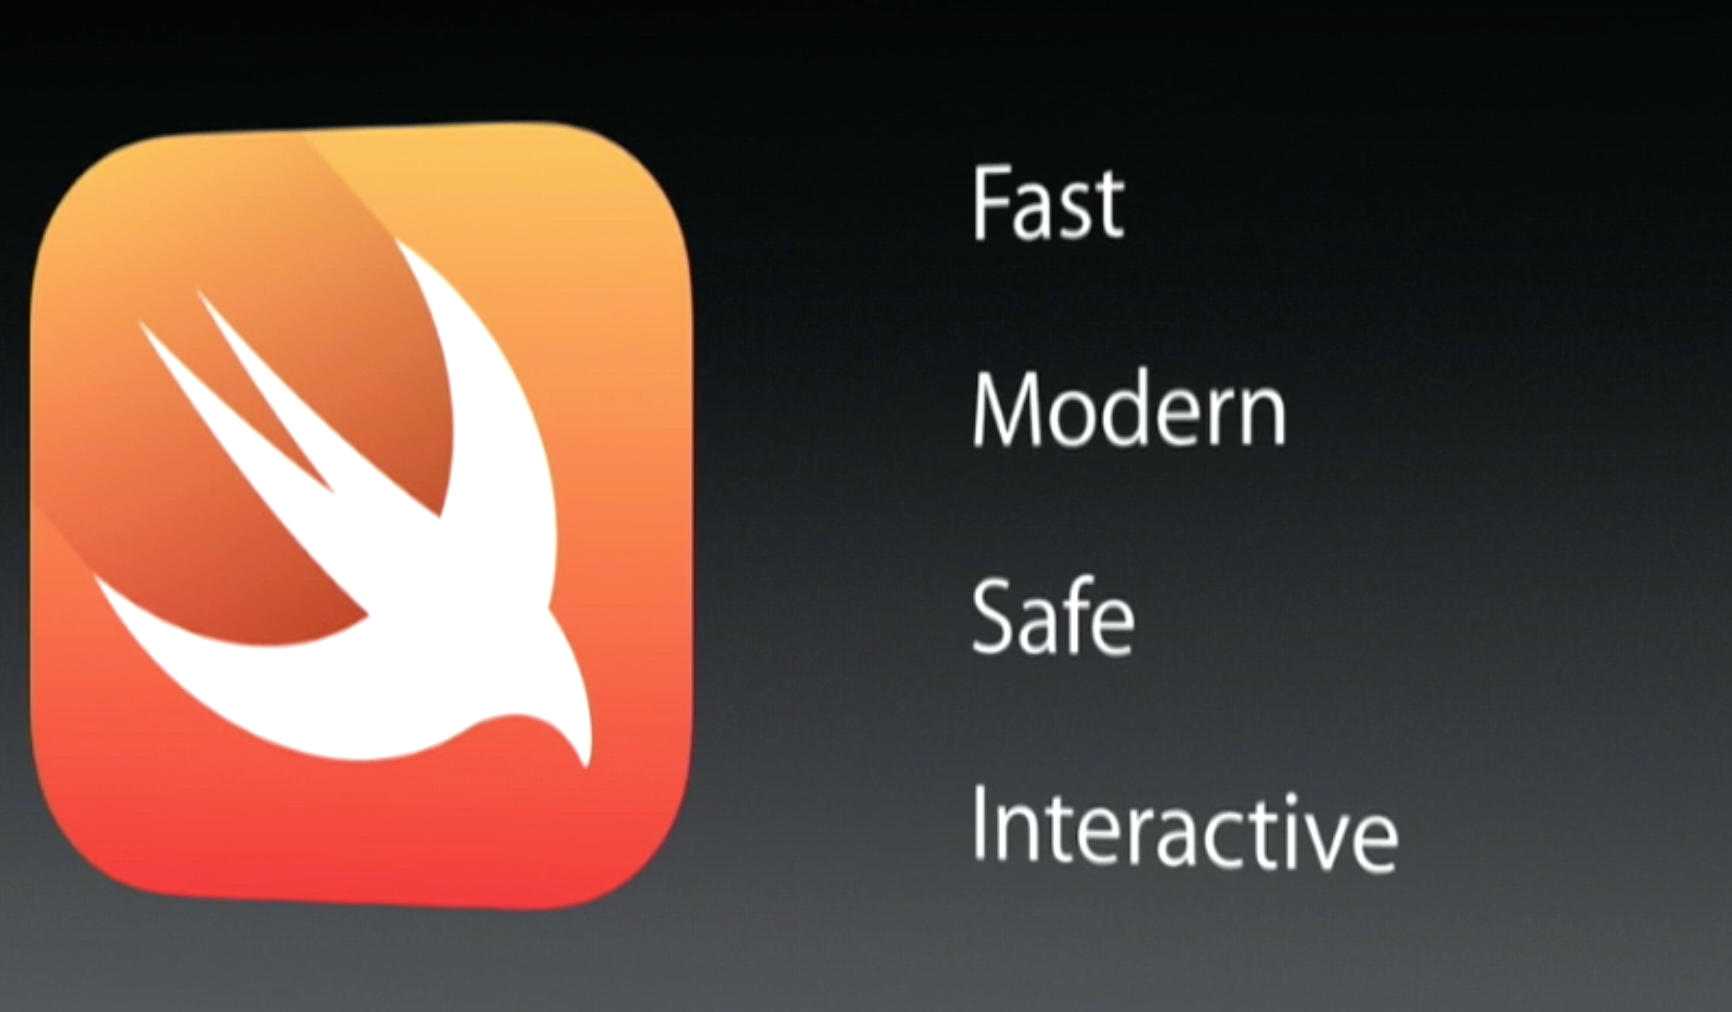 Apple's Swift open source